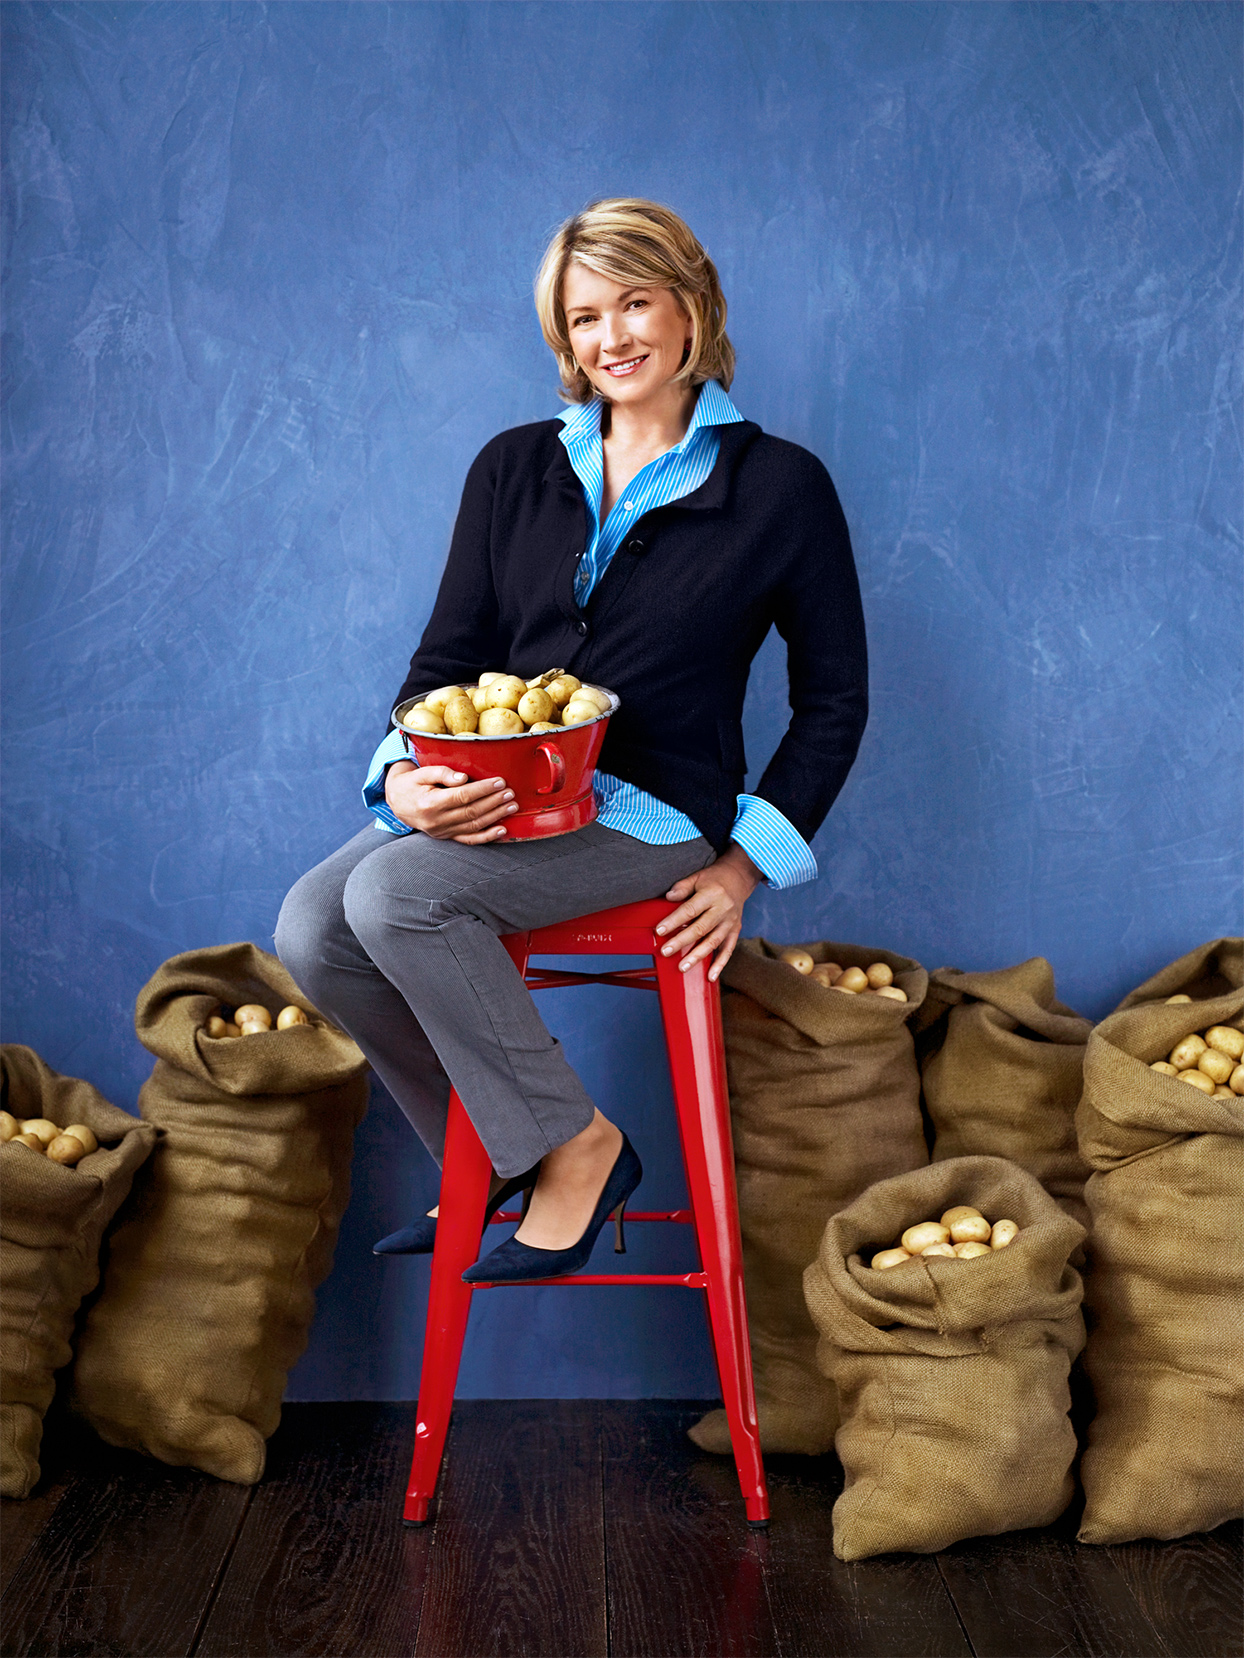 martha stewart with sacks of potatoes